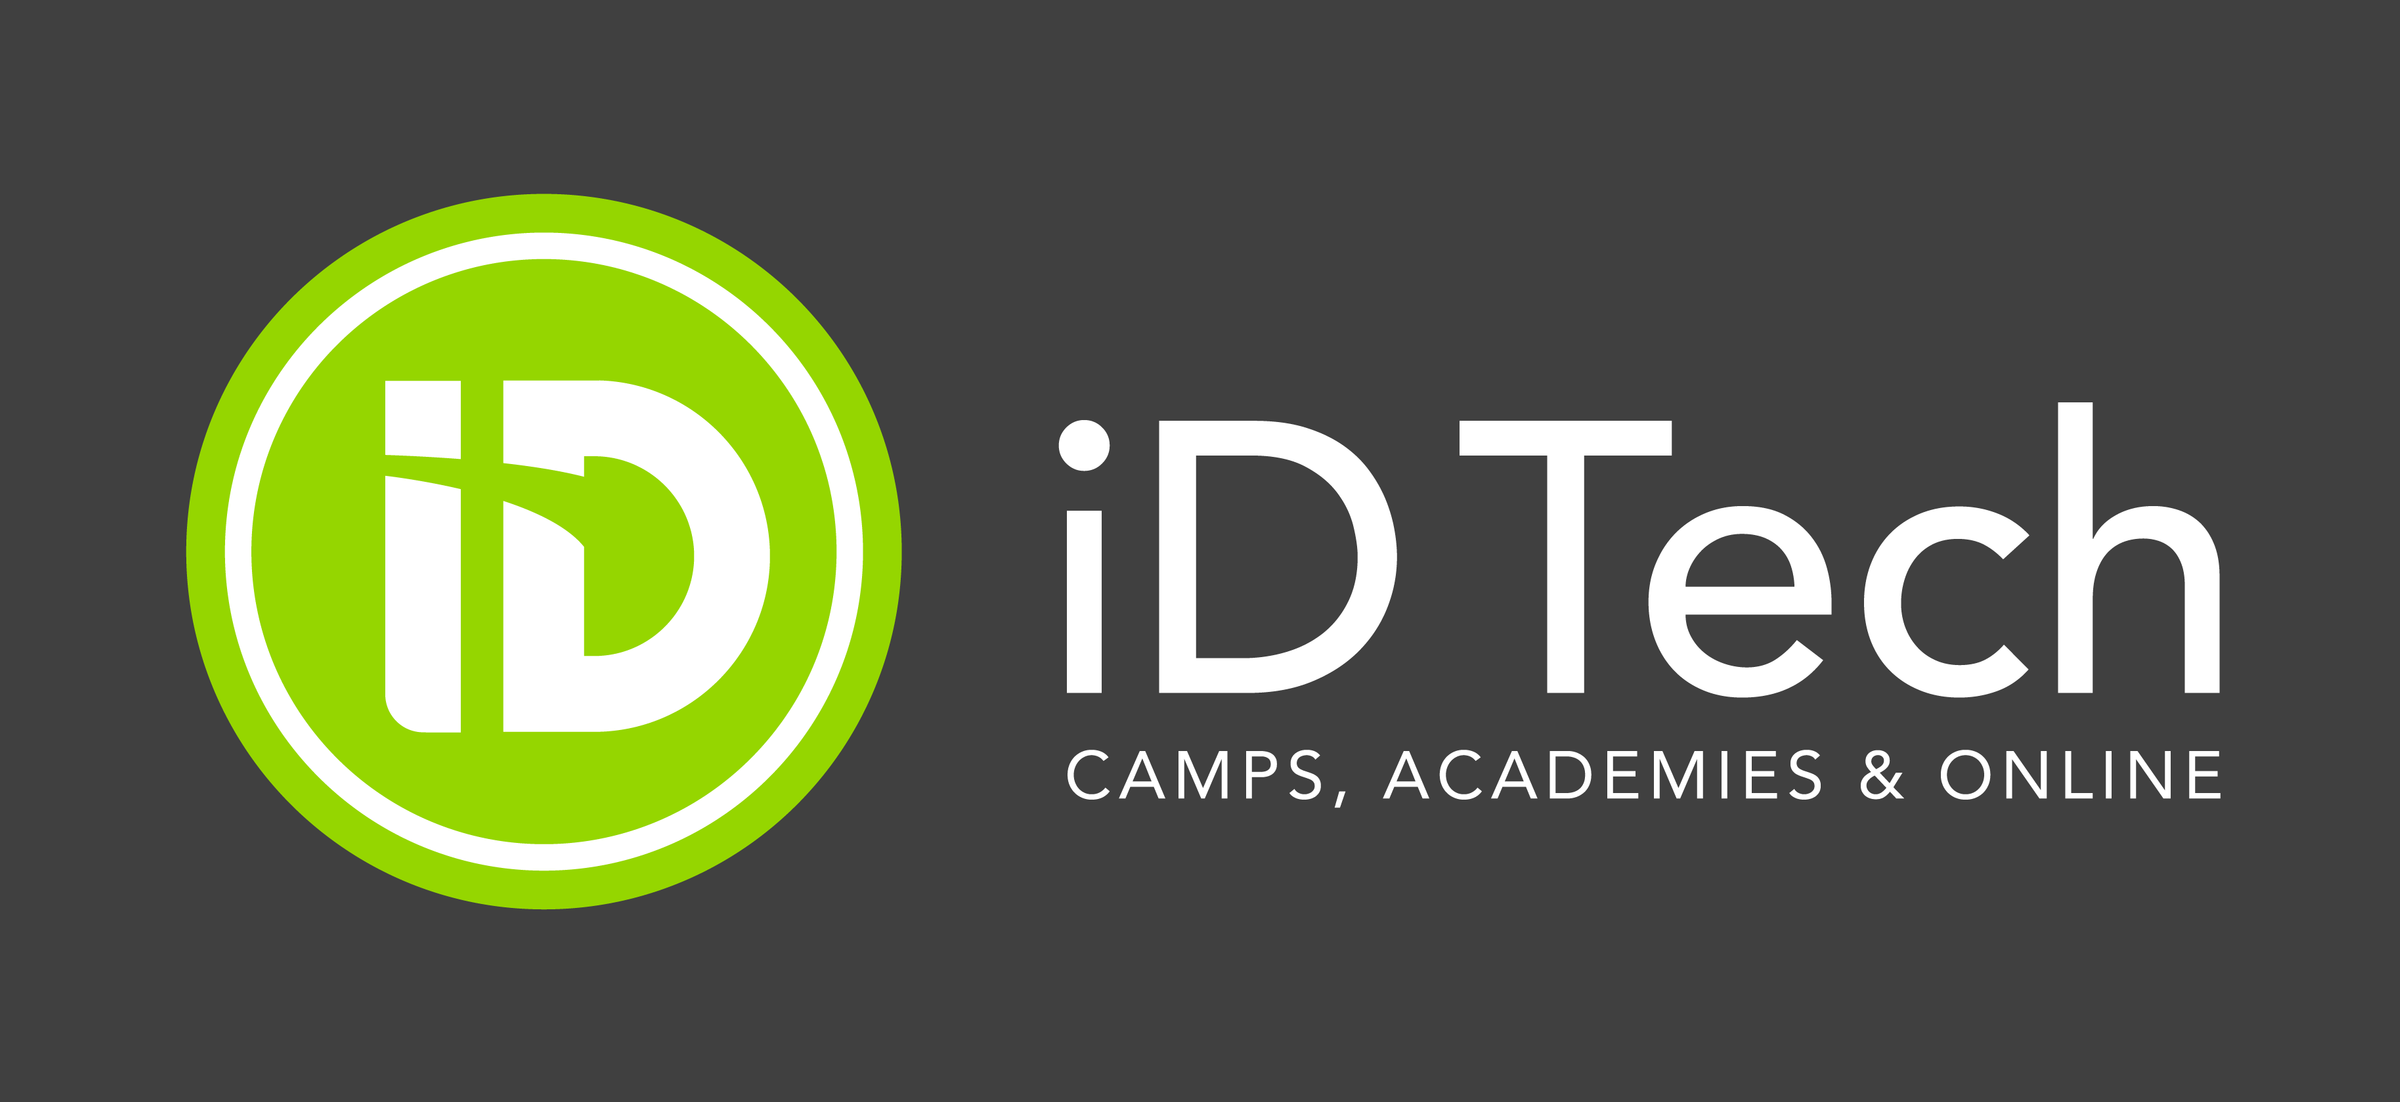 iD Tech Camps: #1 in STEM Education - Held at American University